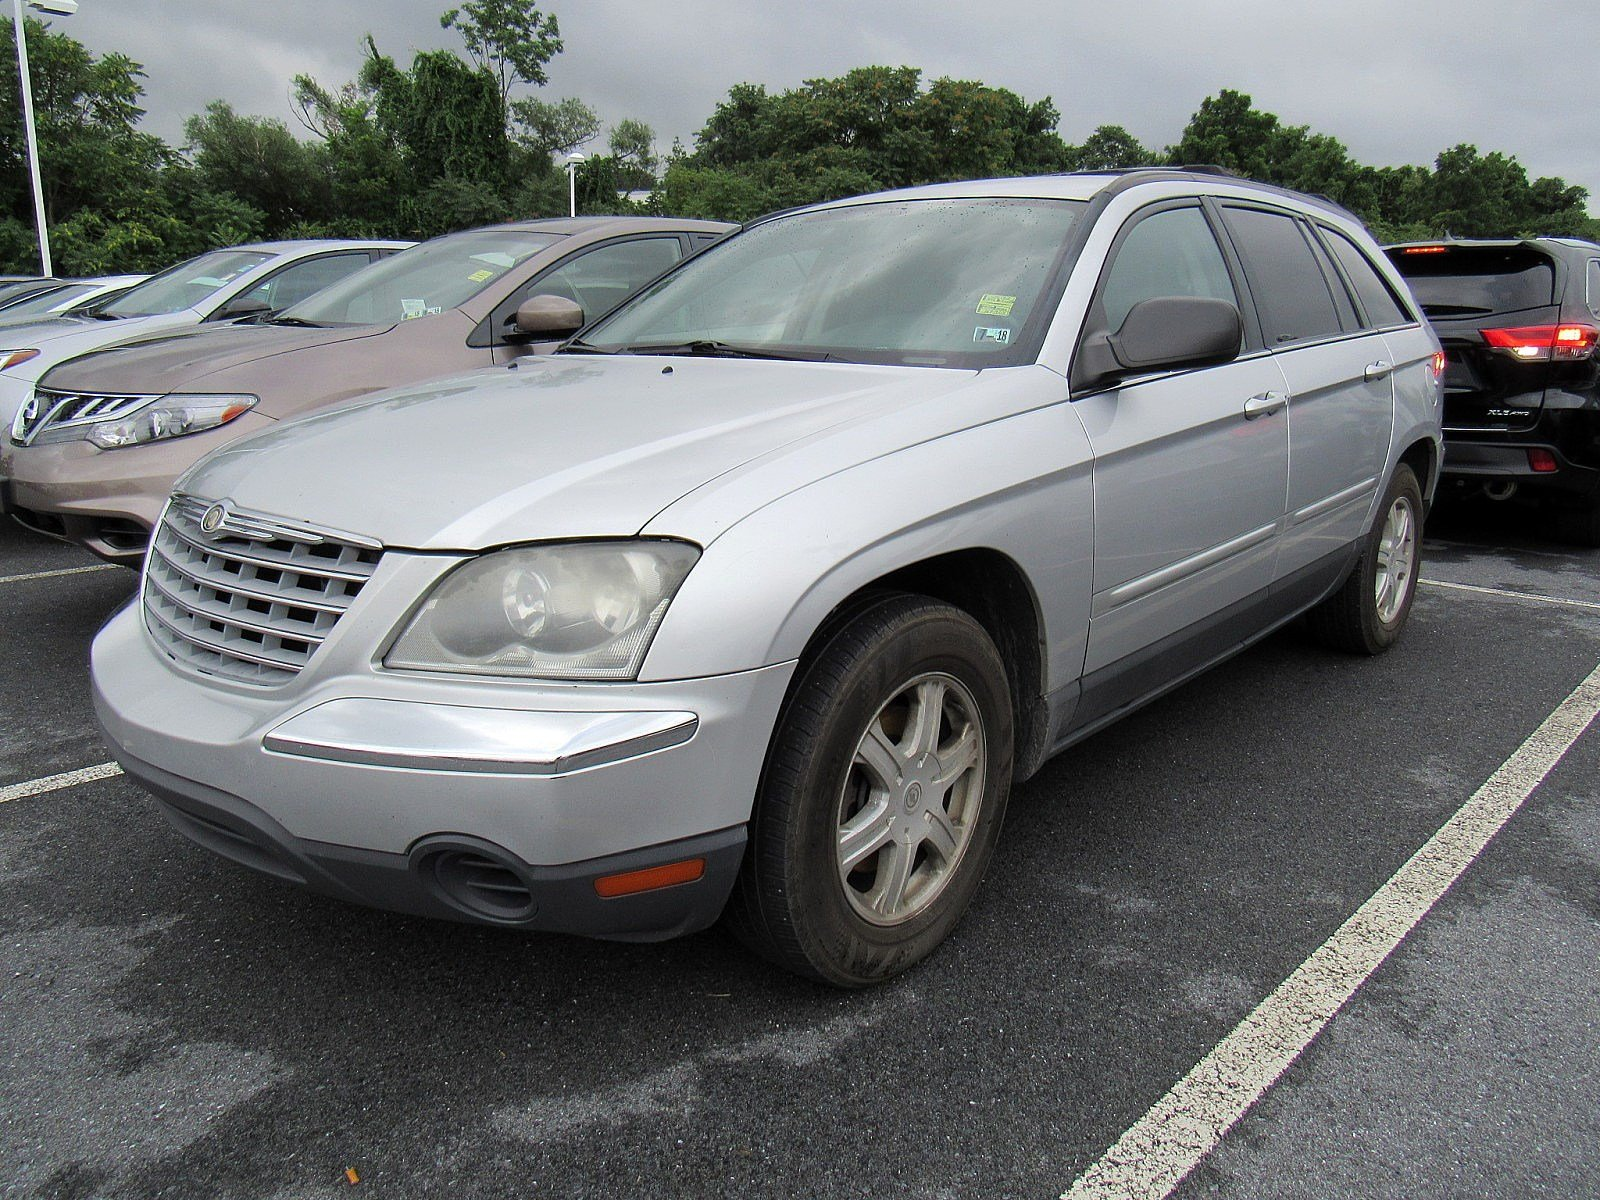 New 2006 Chrysler Pacifica Touring